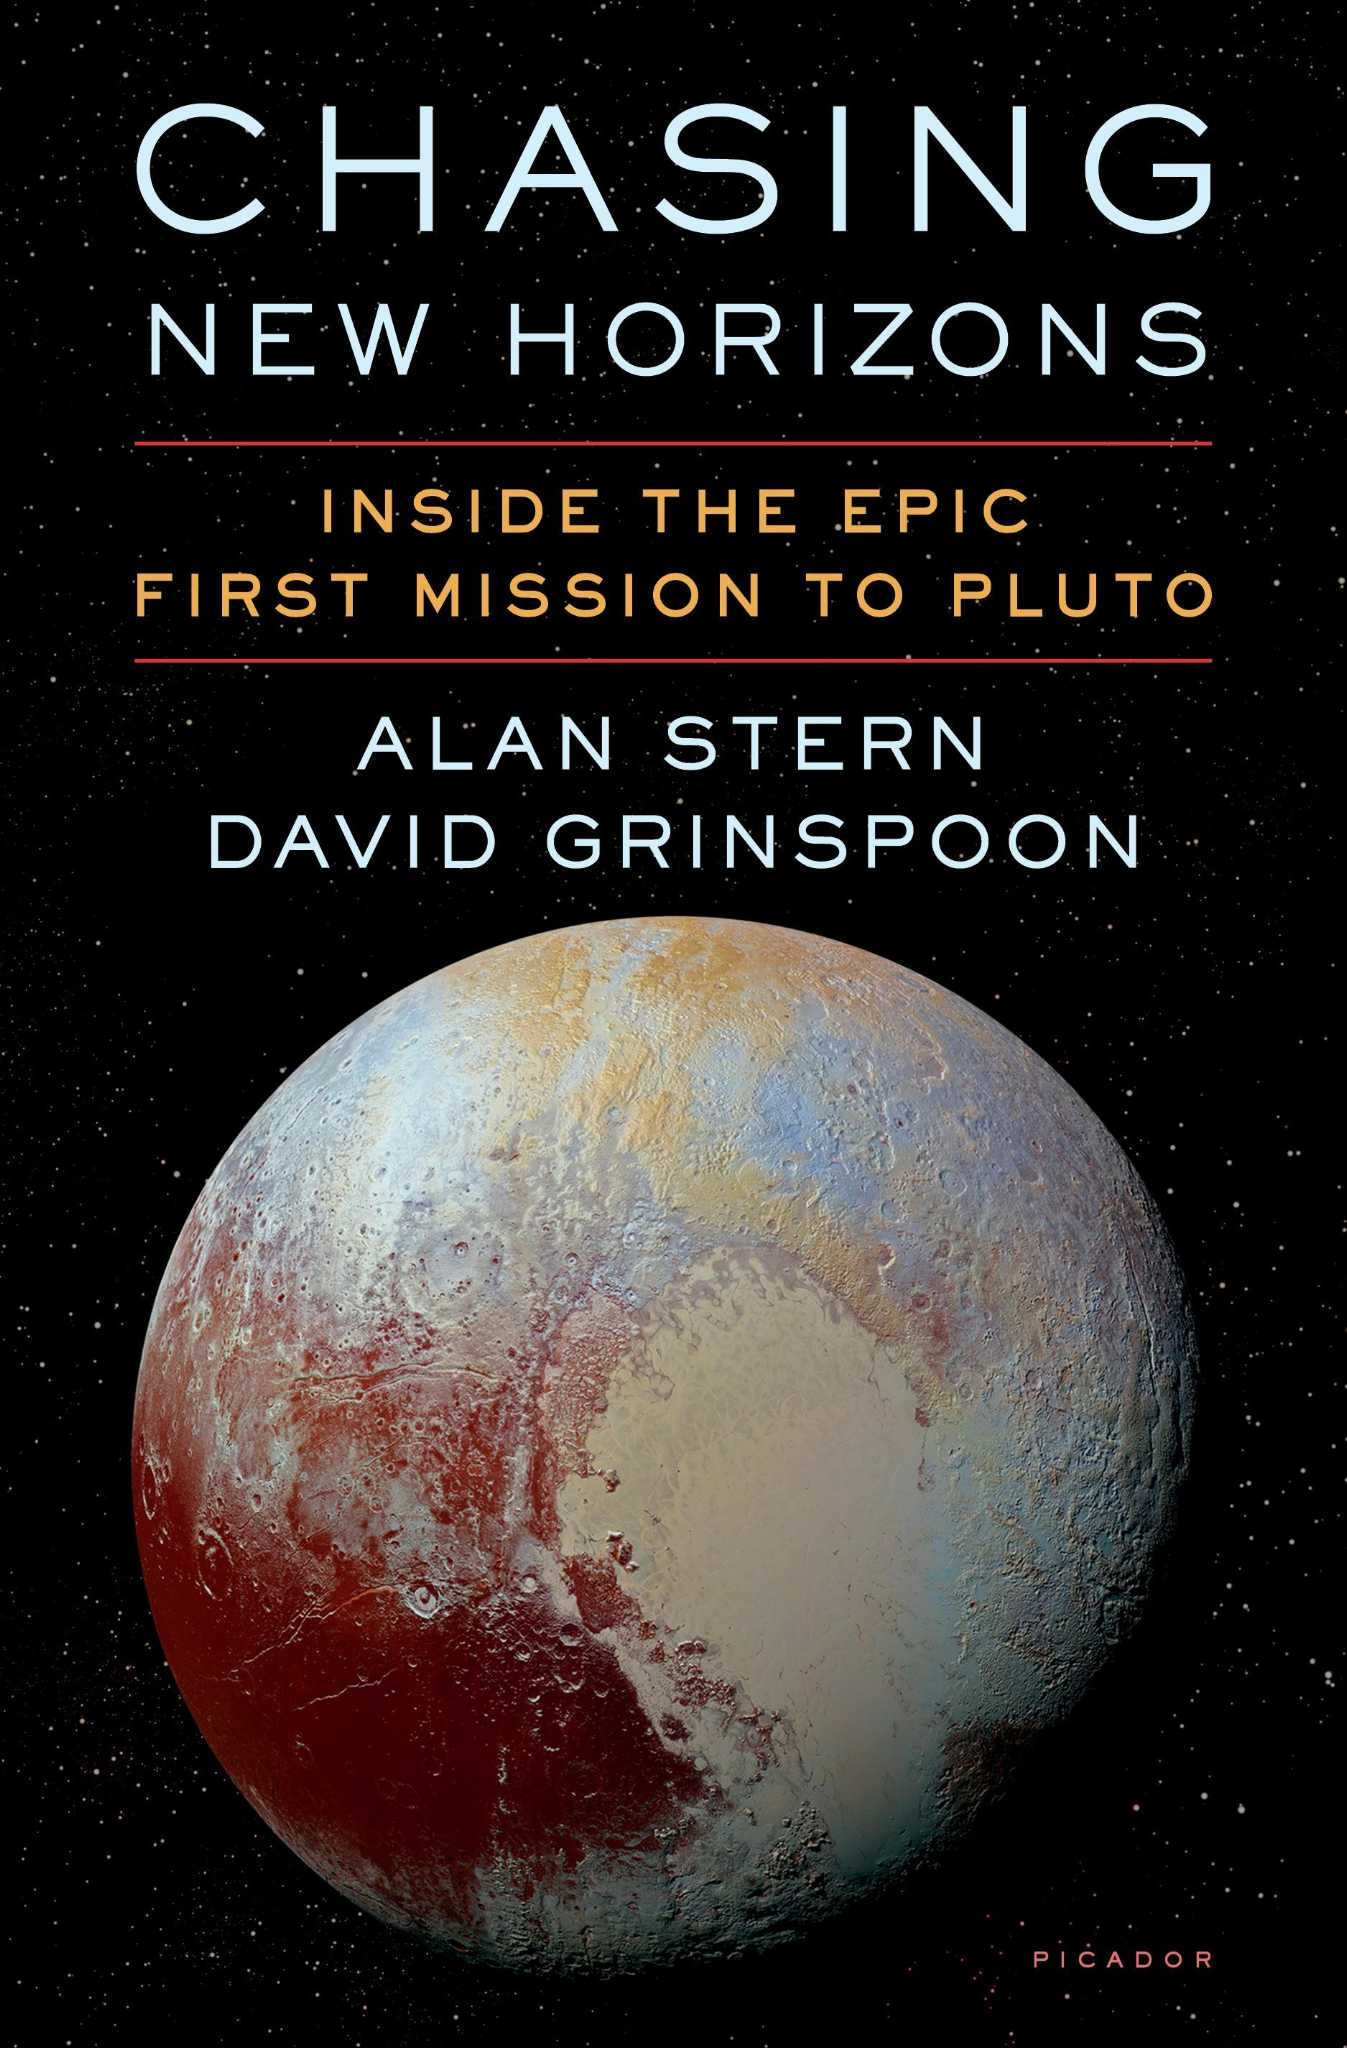 Discovery Of Pluto: The Drama Of Pluto's Discovery Fuels New Book 'Chasing New